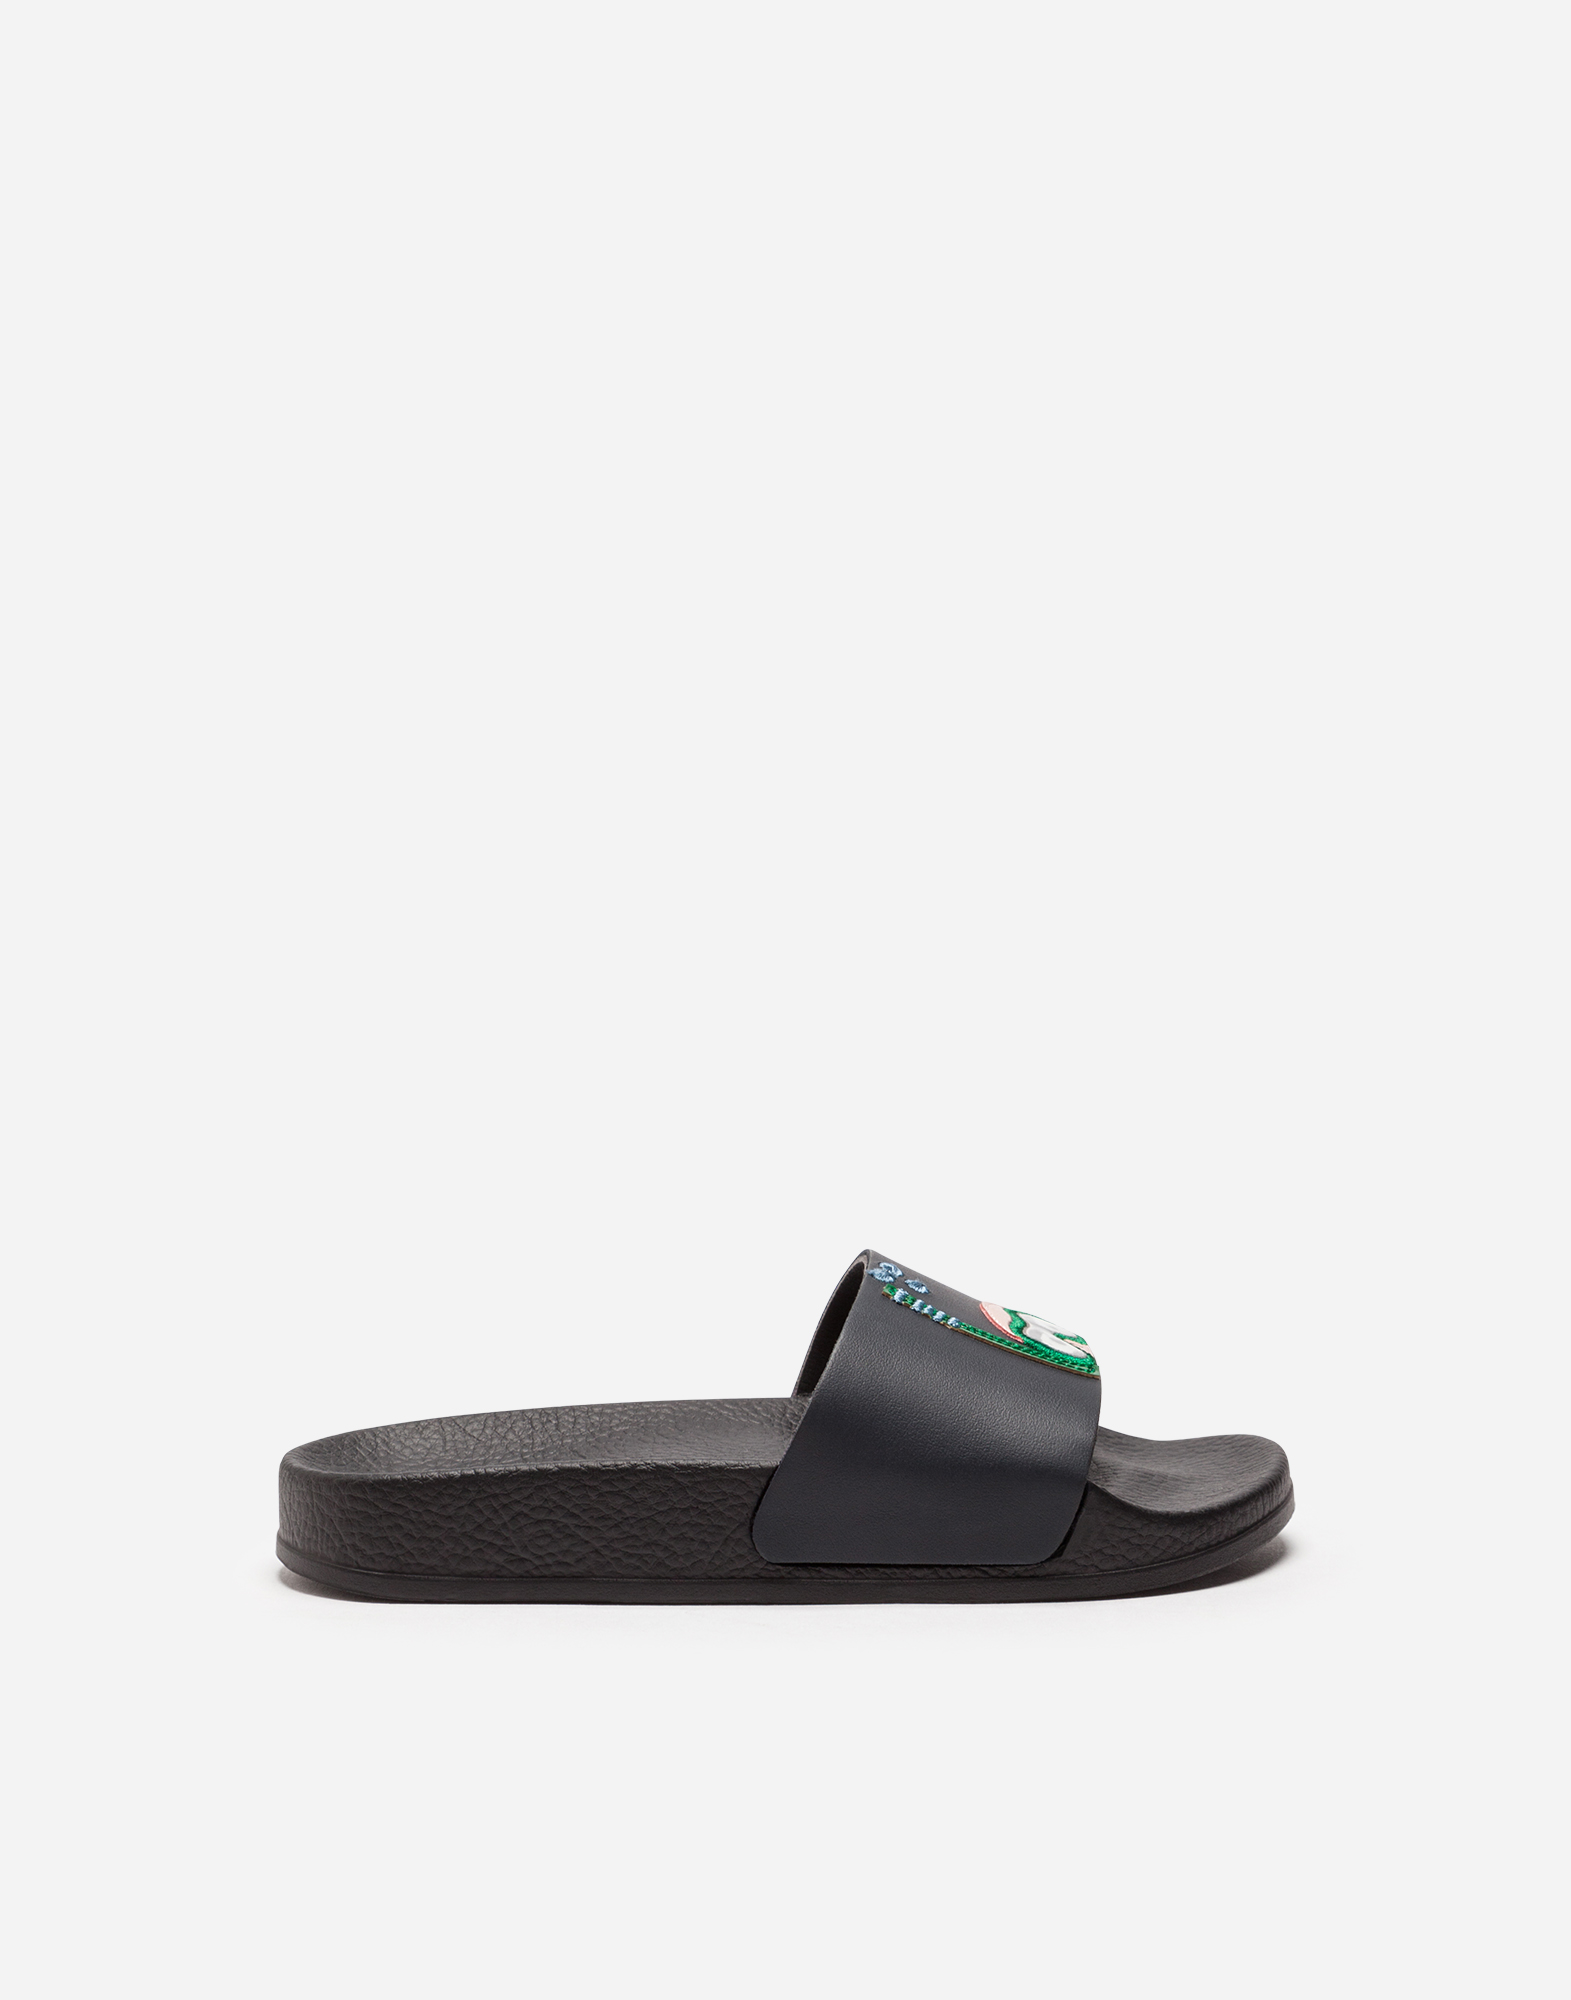 Dolce & Gabbana RUBBER SLIDERS WITH PATCH